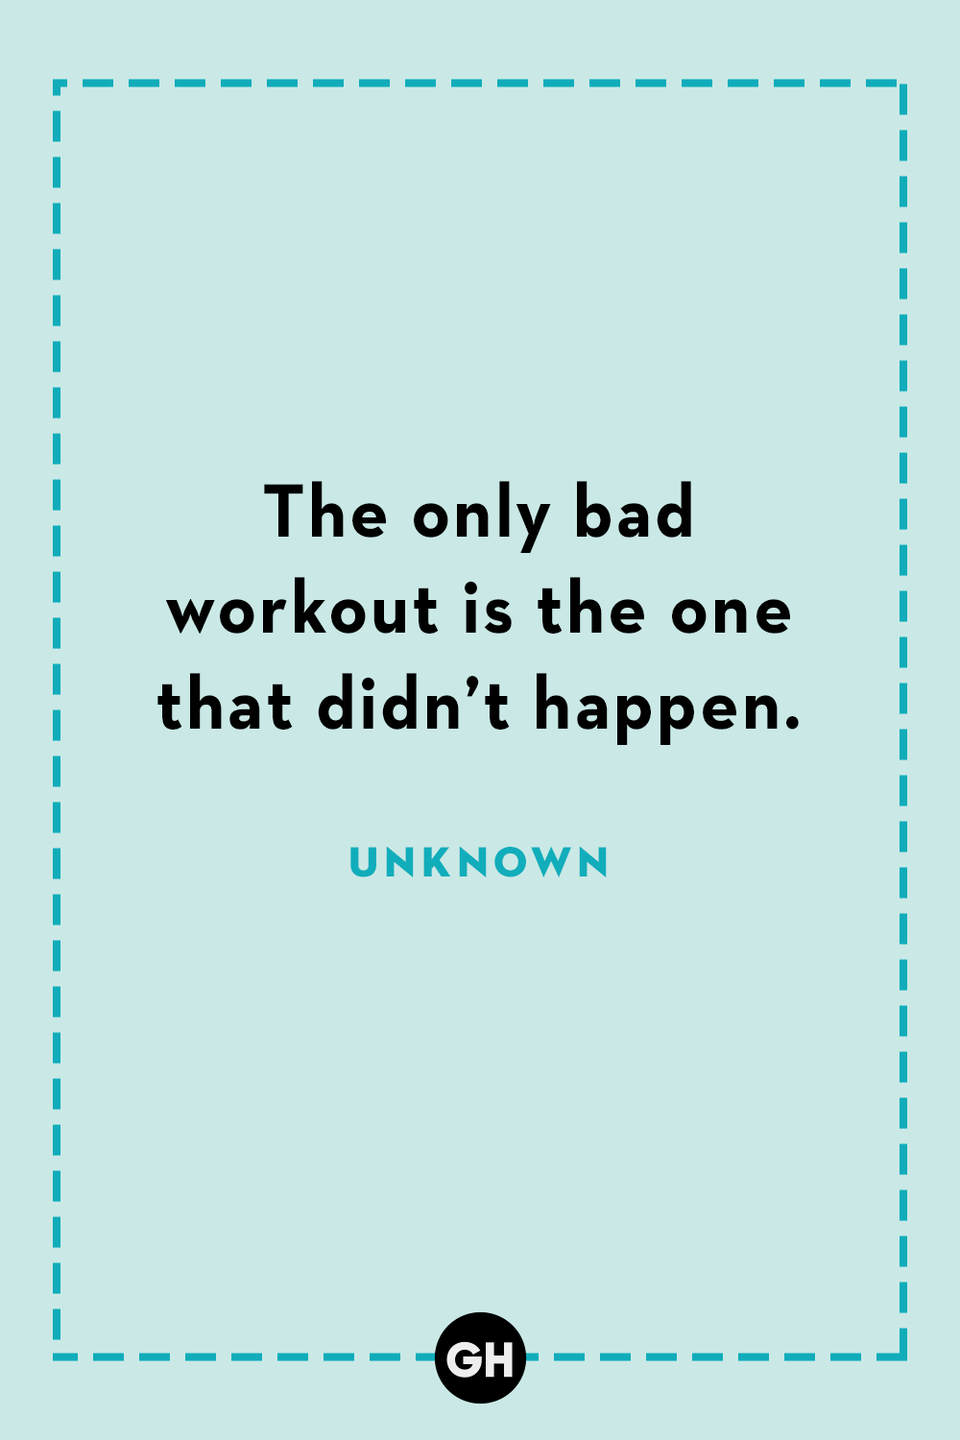 <p>The only bad workout is the one that didn't happen.</p>